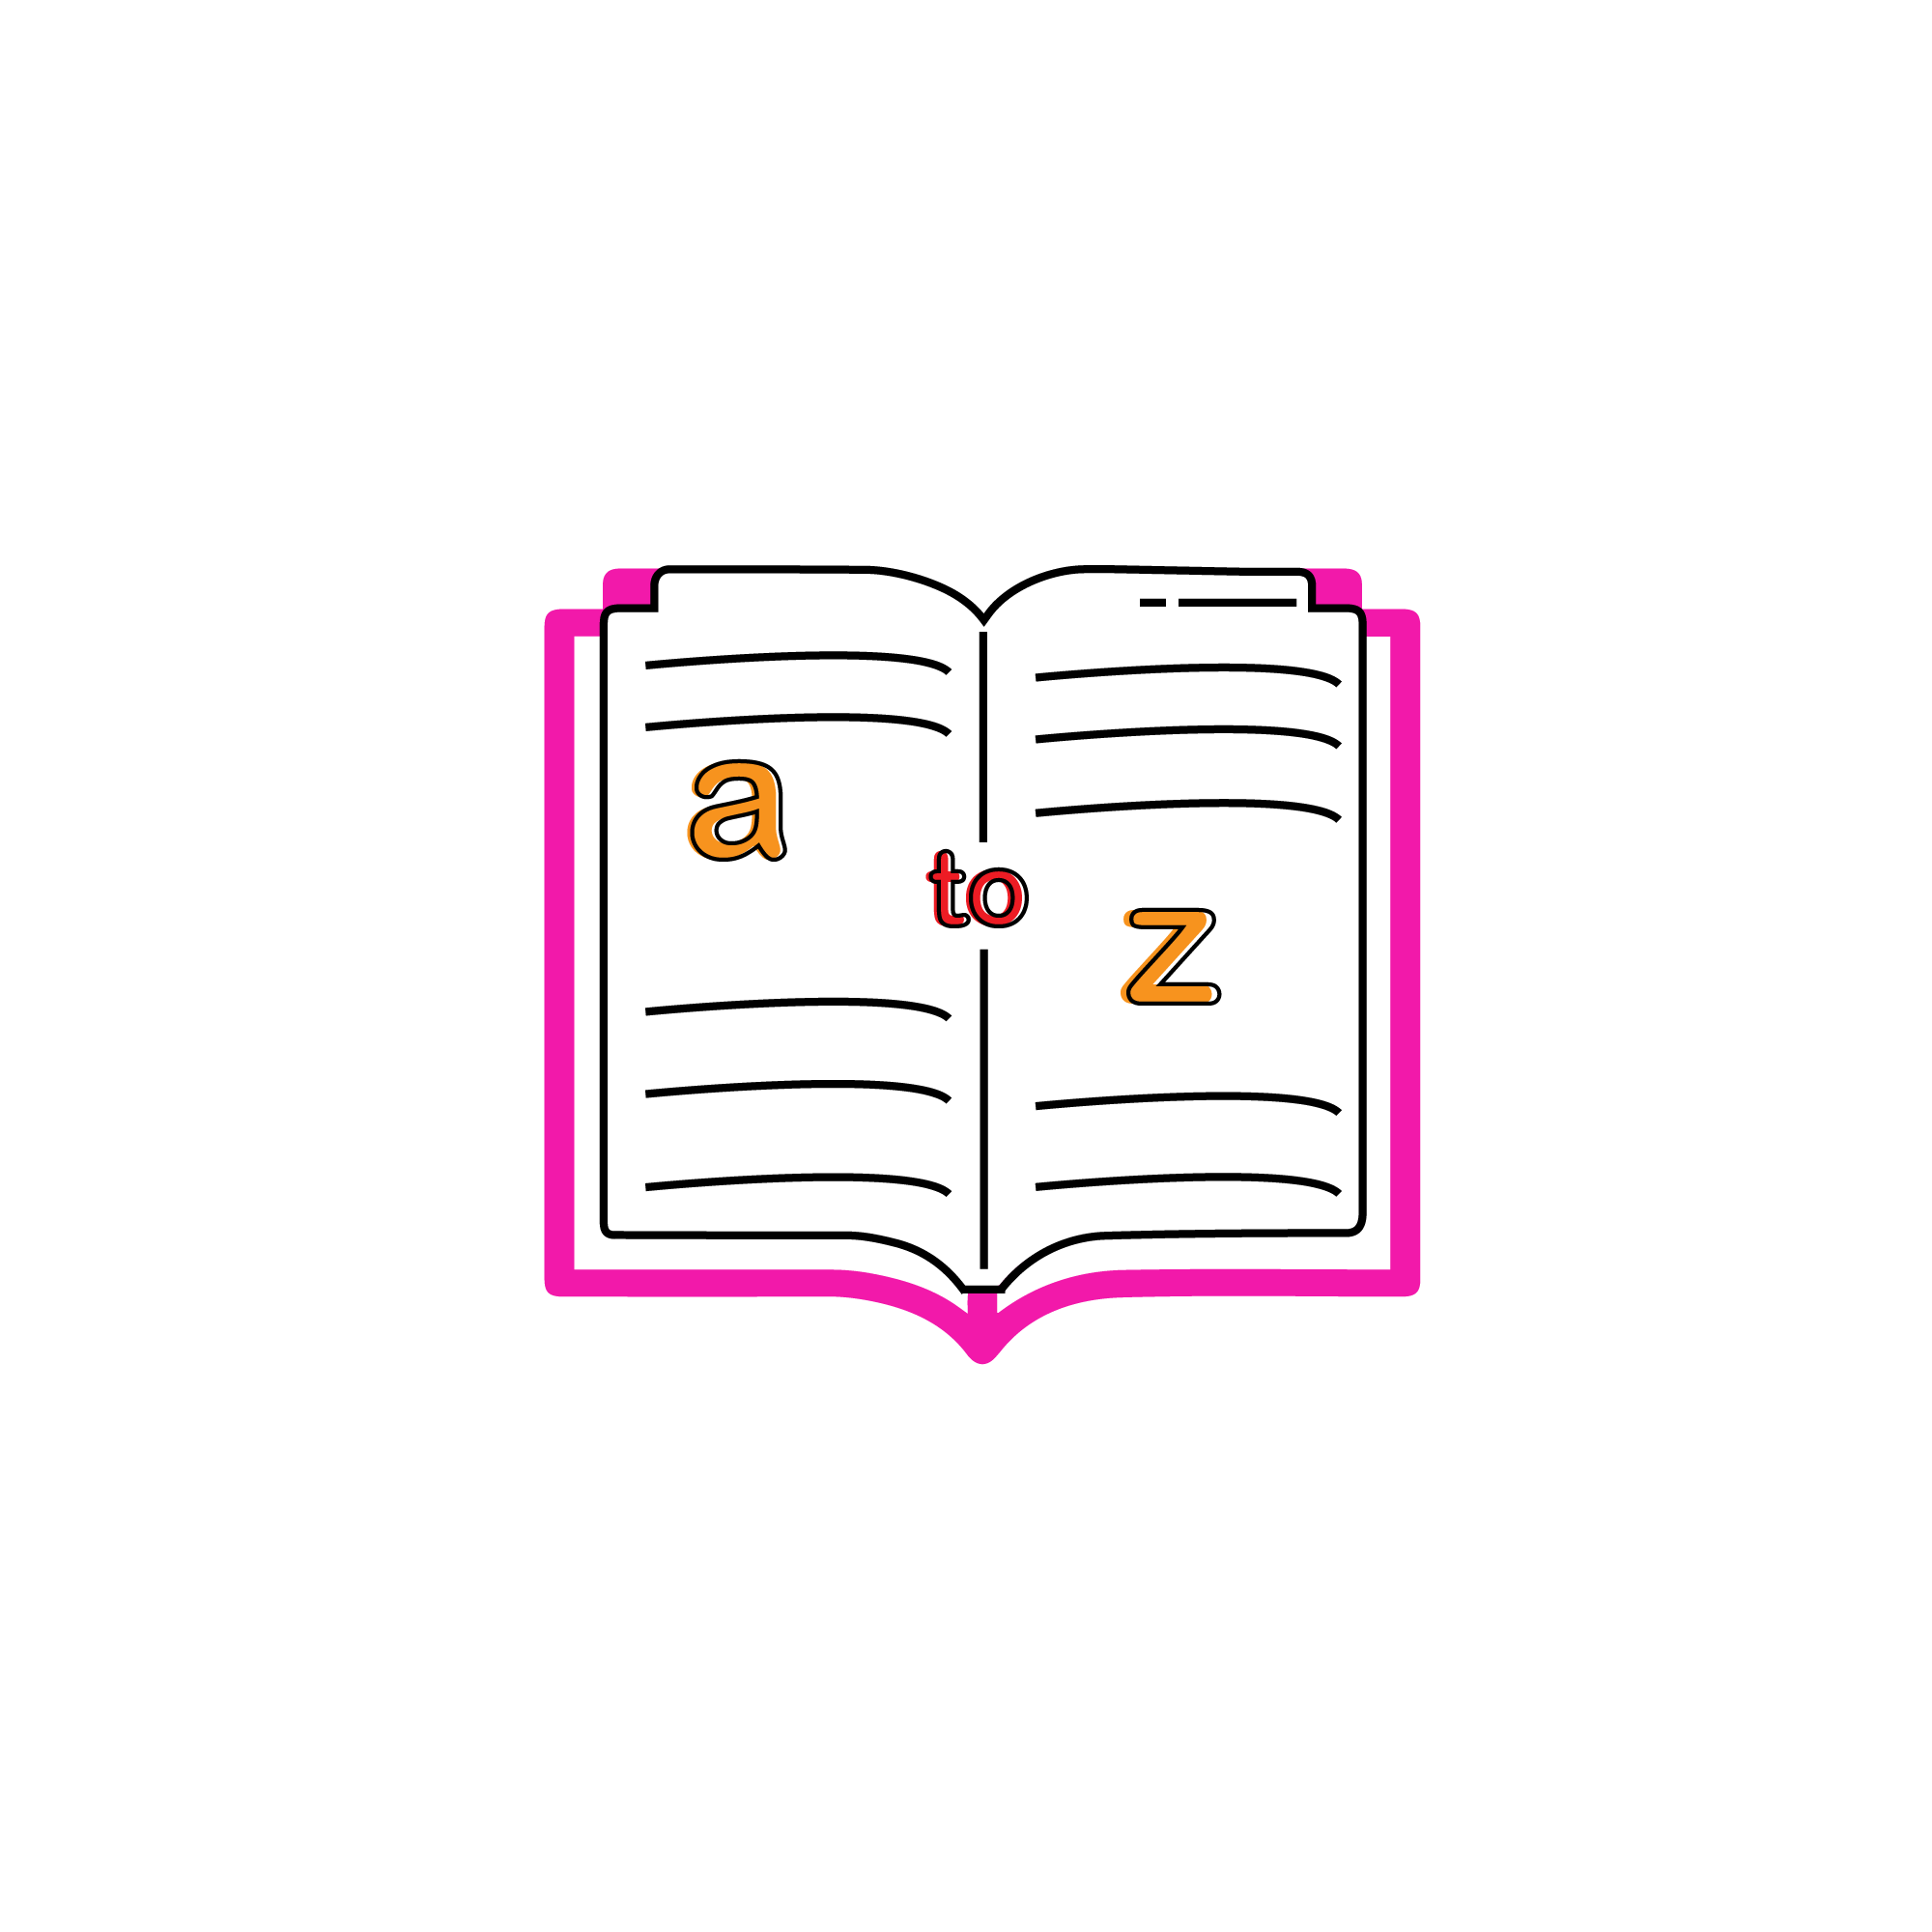 Vocabulary-in-context questions are usually among the most straightforward questions on the Reading Test, as well as some of the least time-consuming.